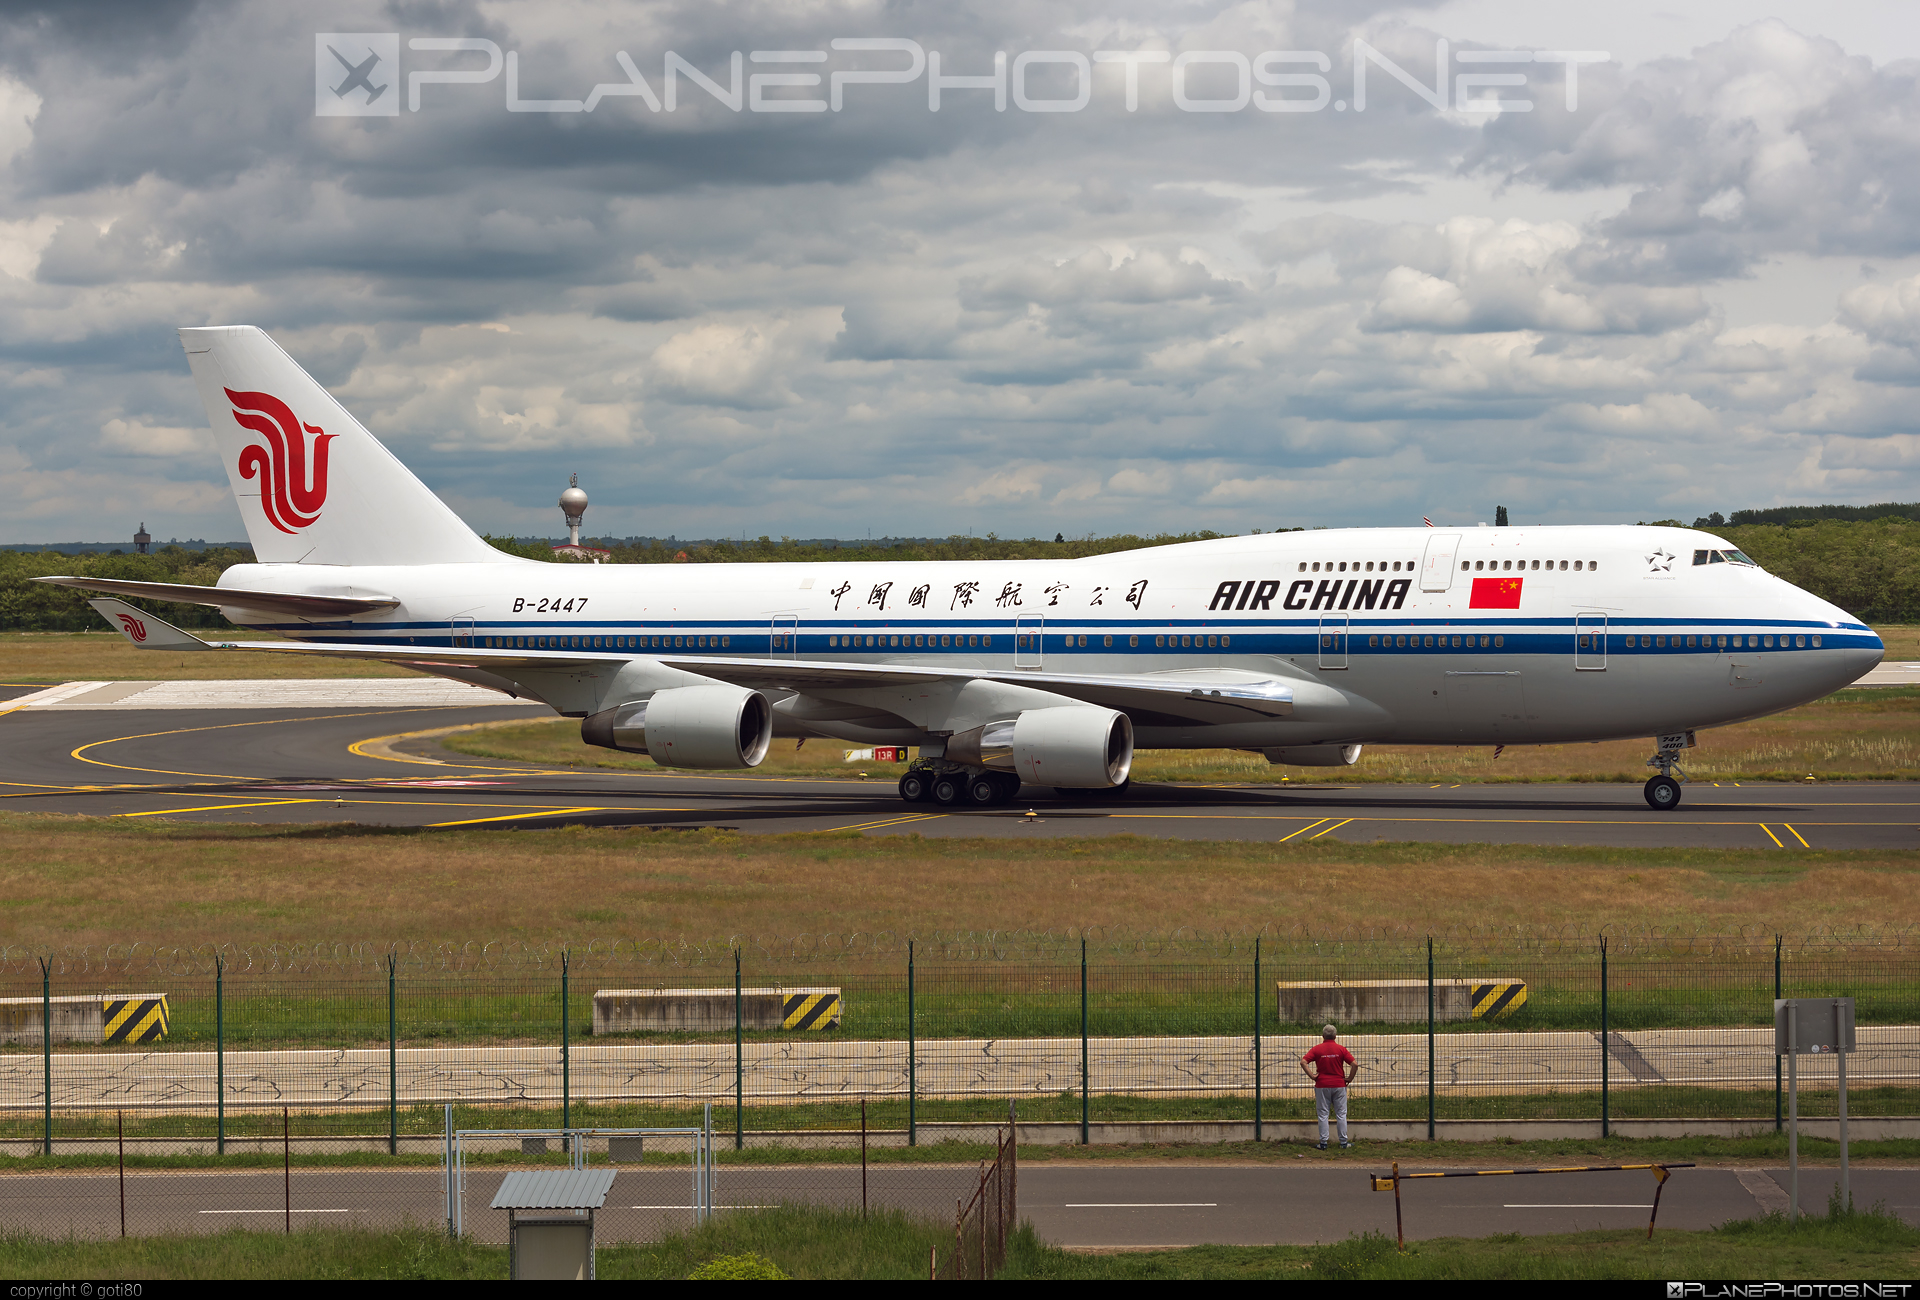 Boeing 747-400 - B-2447 operated by Air China #airchina #b747 #boeing #boeing747 #jumbo